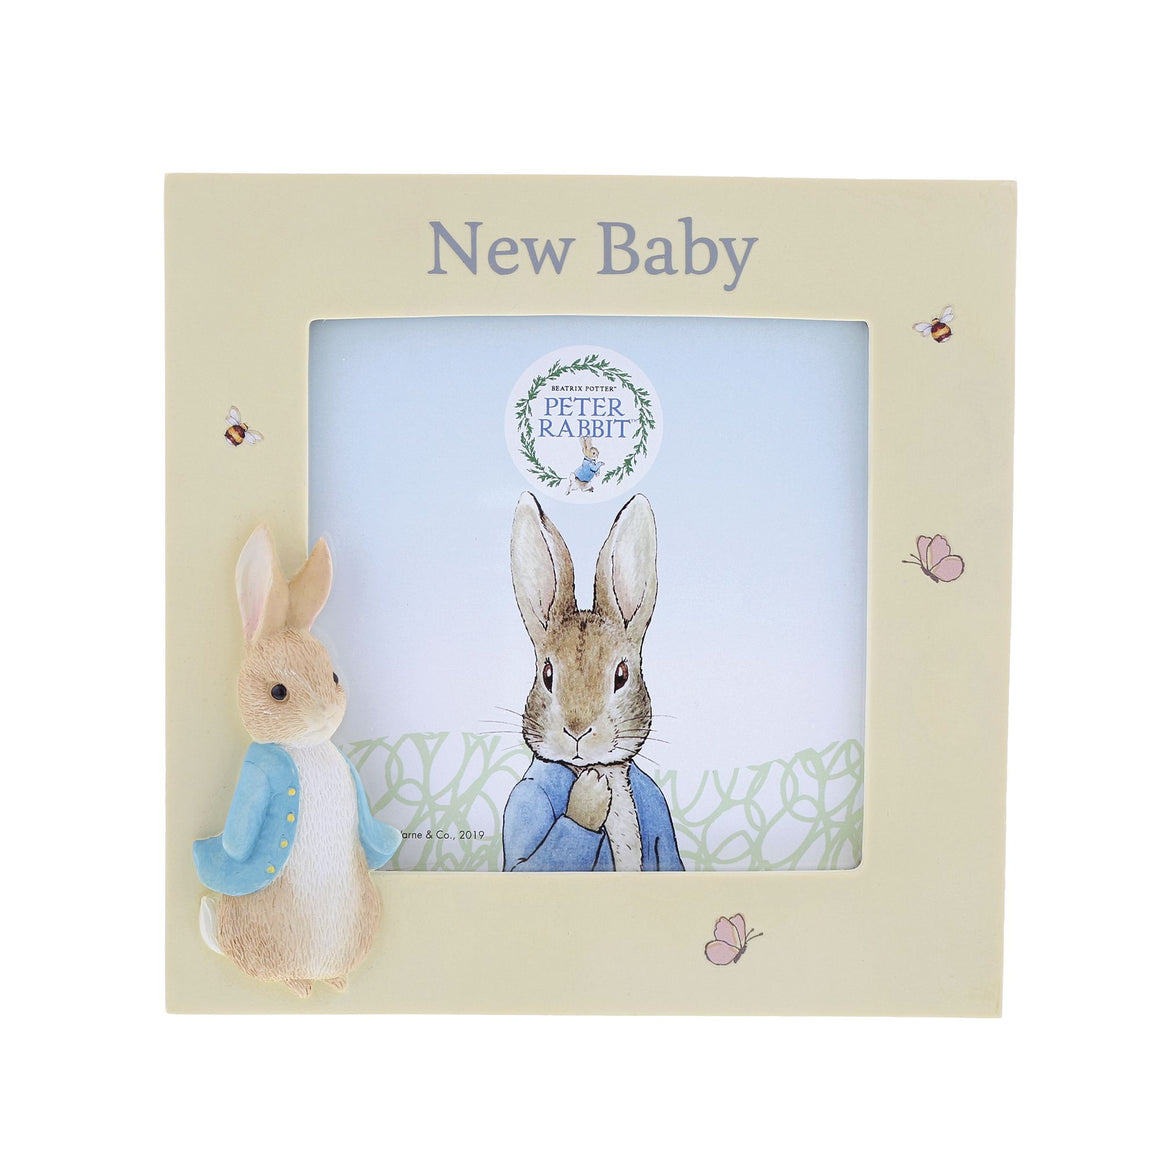 Peter Rabbit New Baby Photo Frame by Beatirix Potter